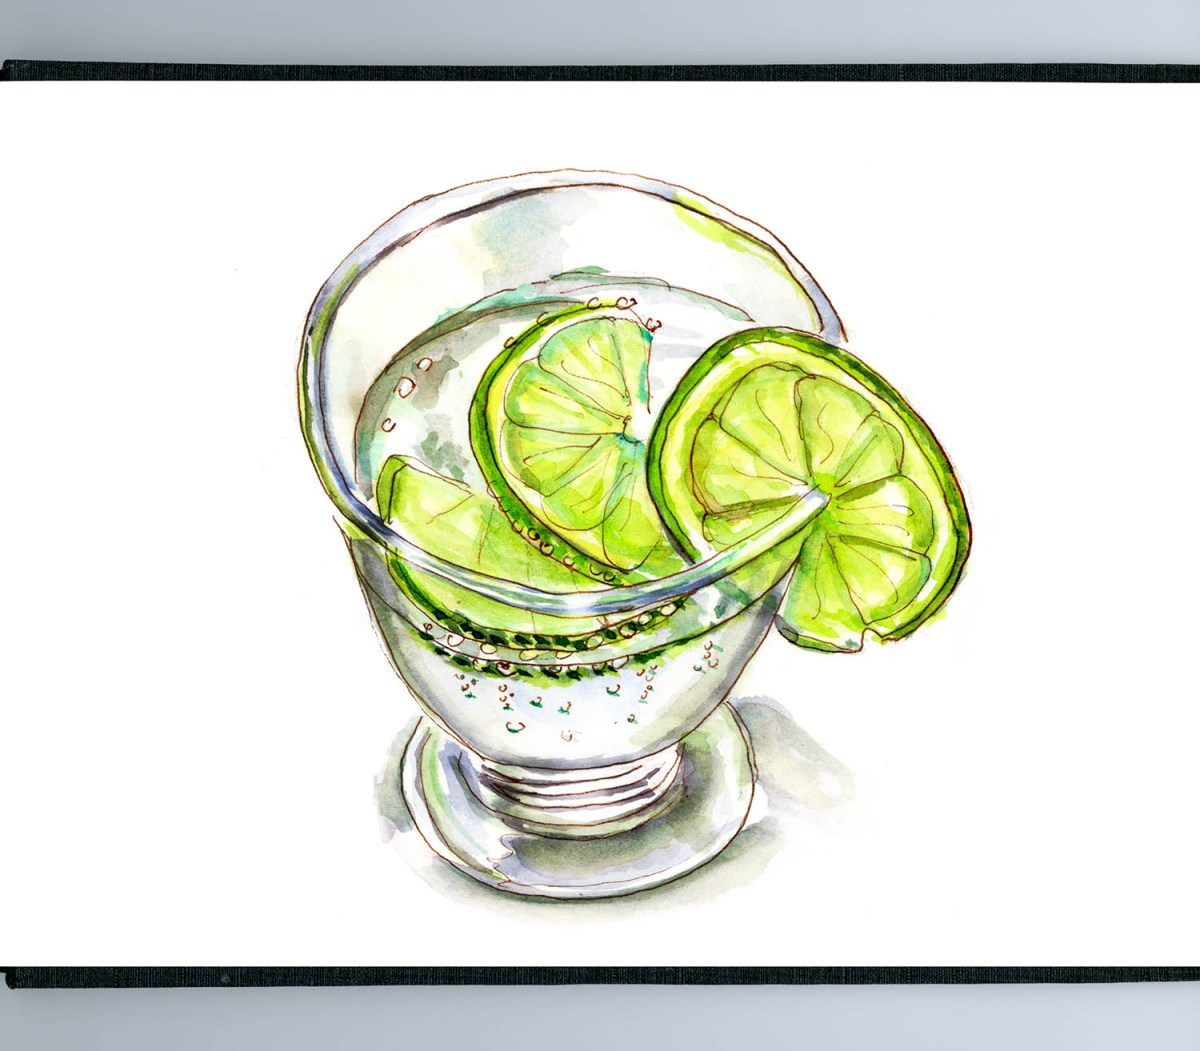 #WorldWatercolorGroup - Day 26 - Sparkling Water With Lime - Doodlewash